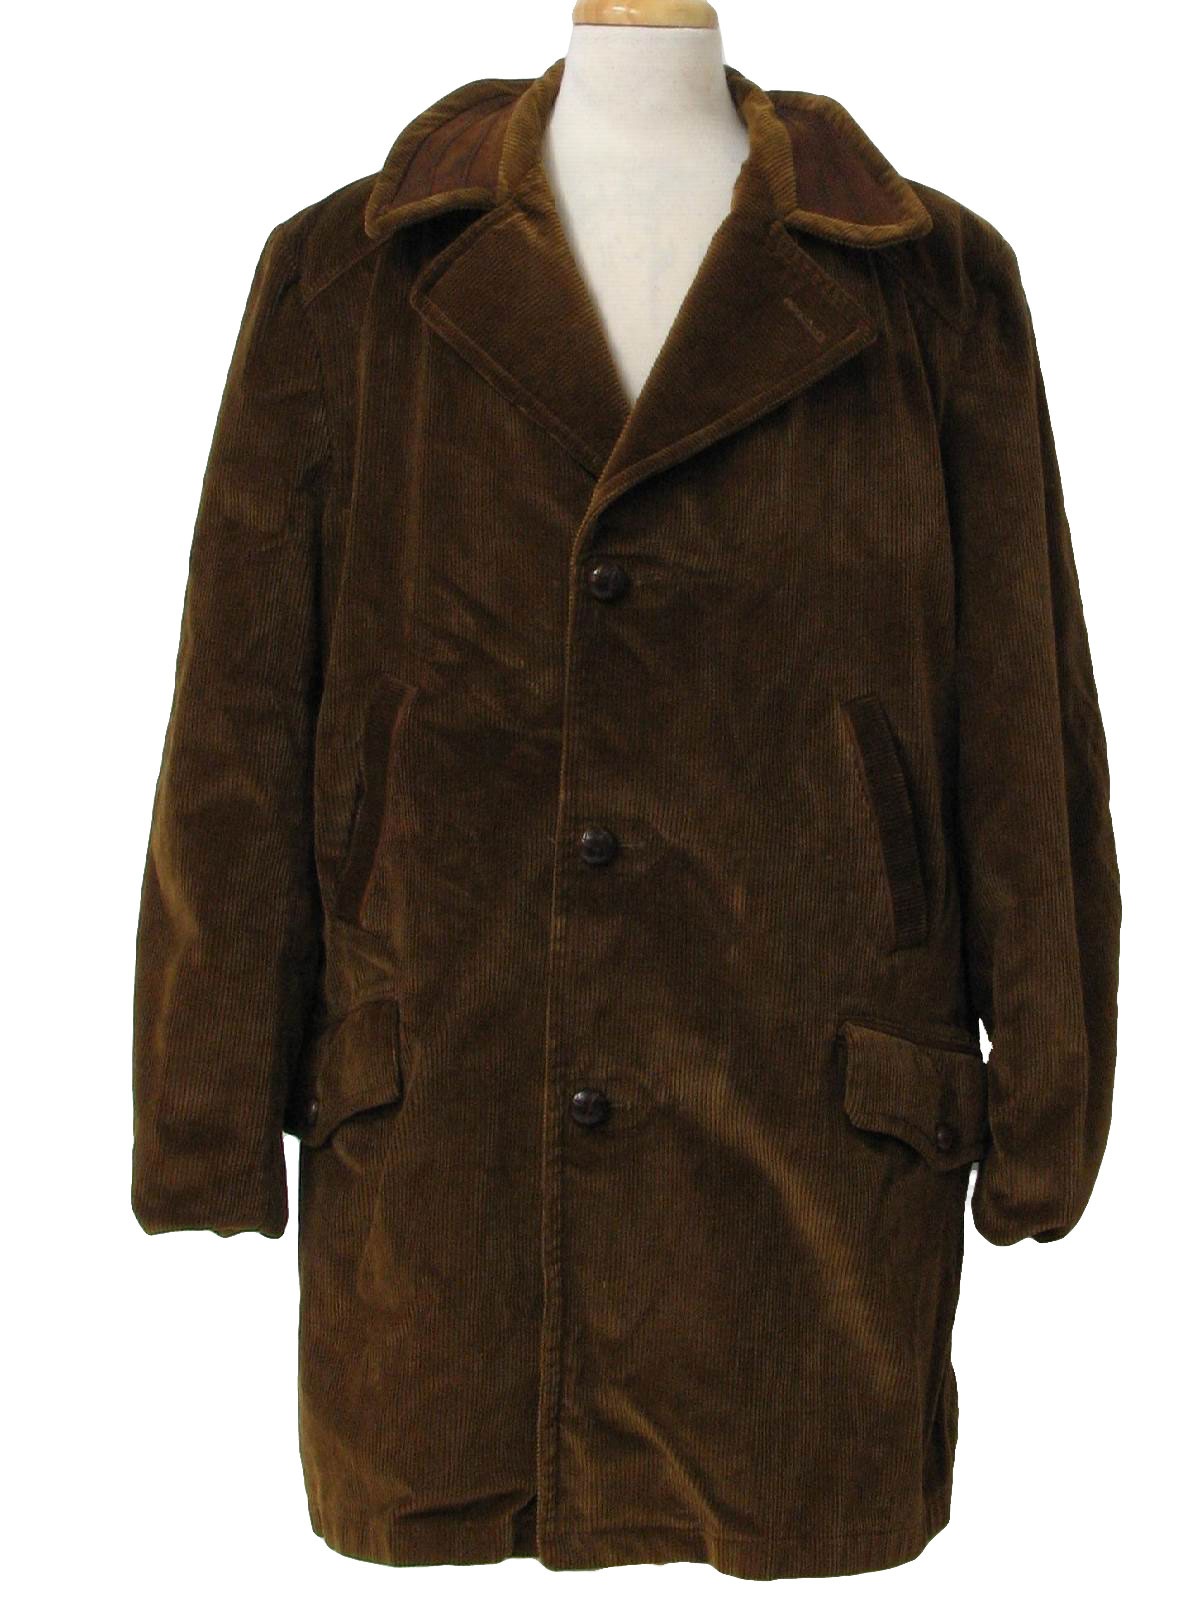 70's Vintage Jacket: 70s -Sears- Mens rust brown corduroy car coat ...